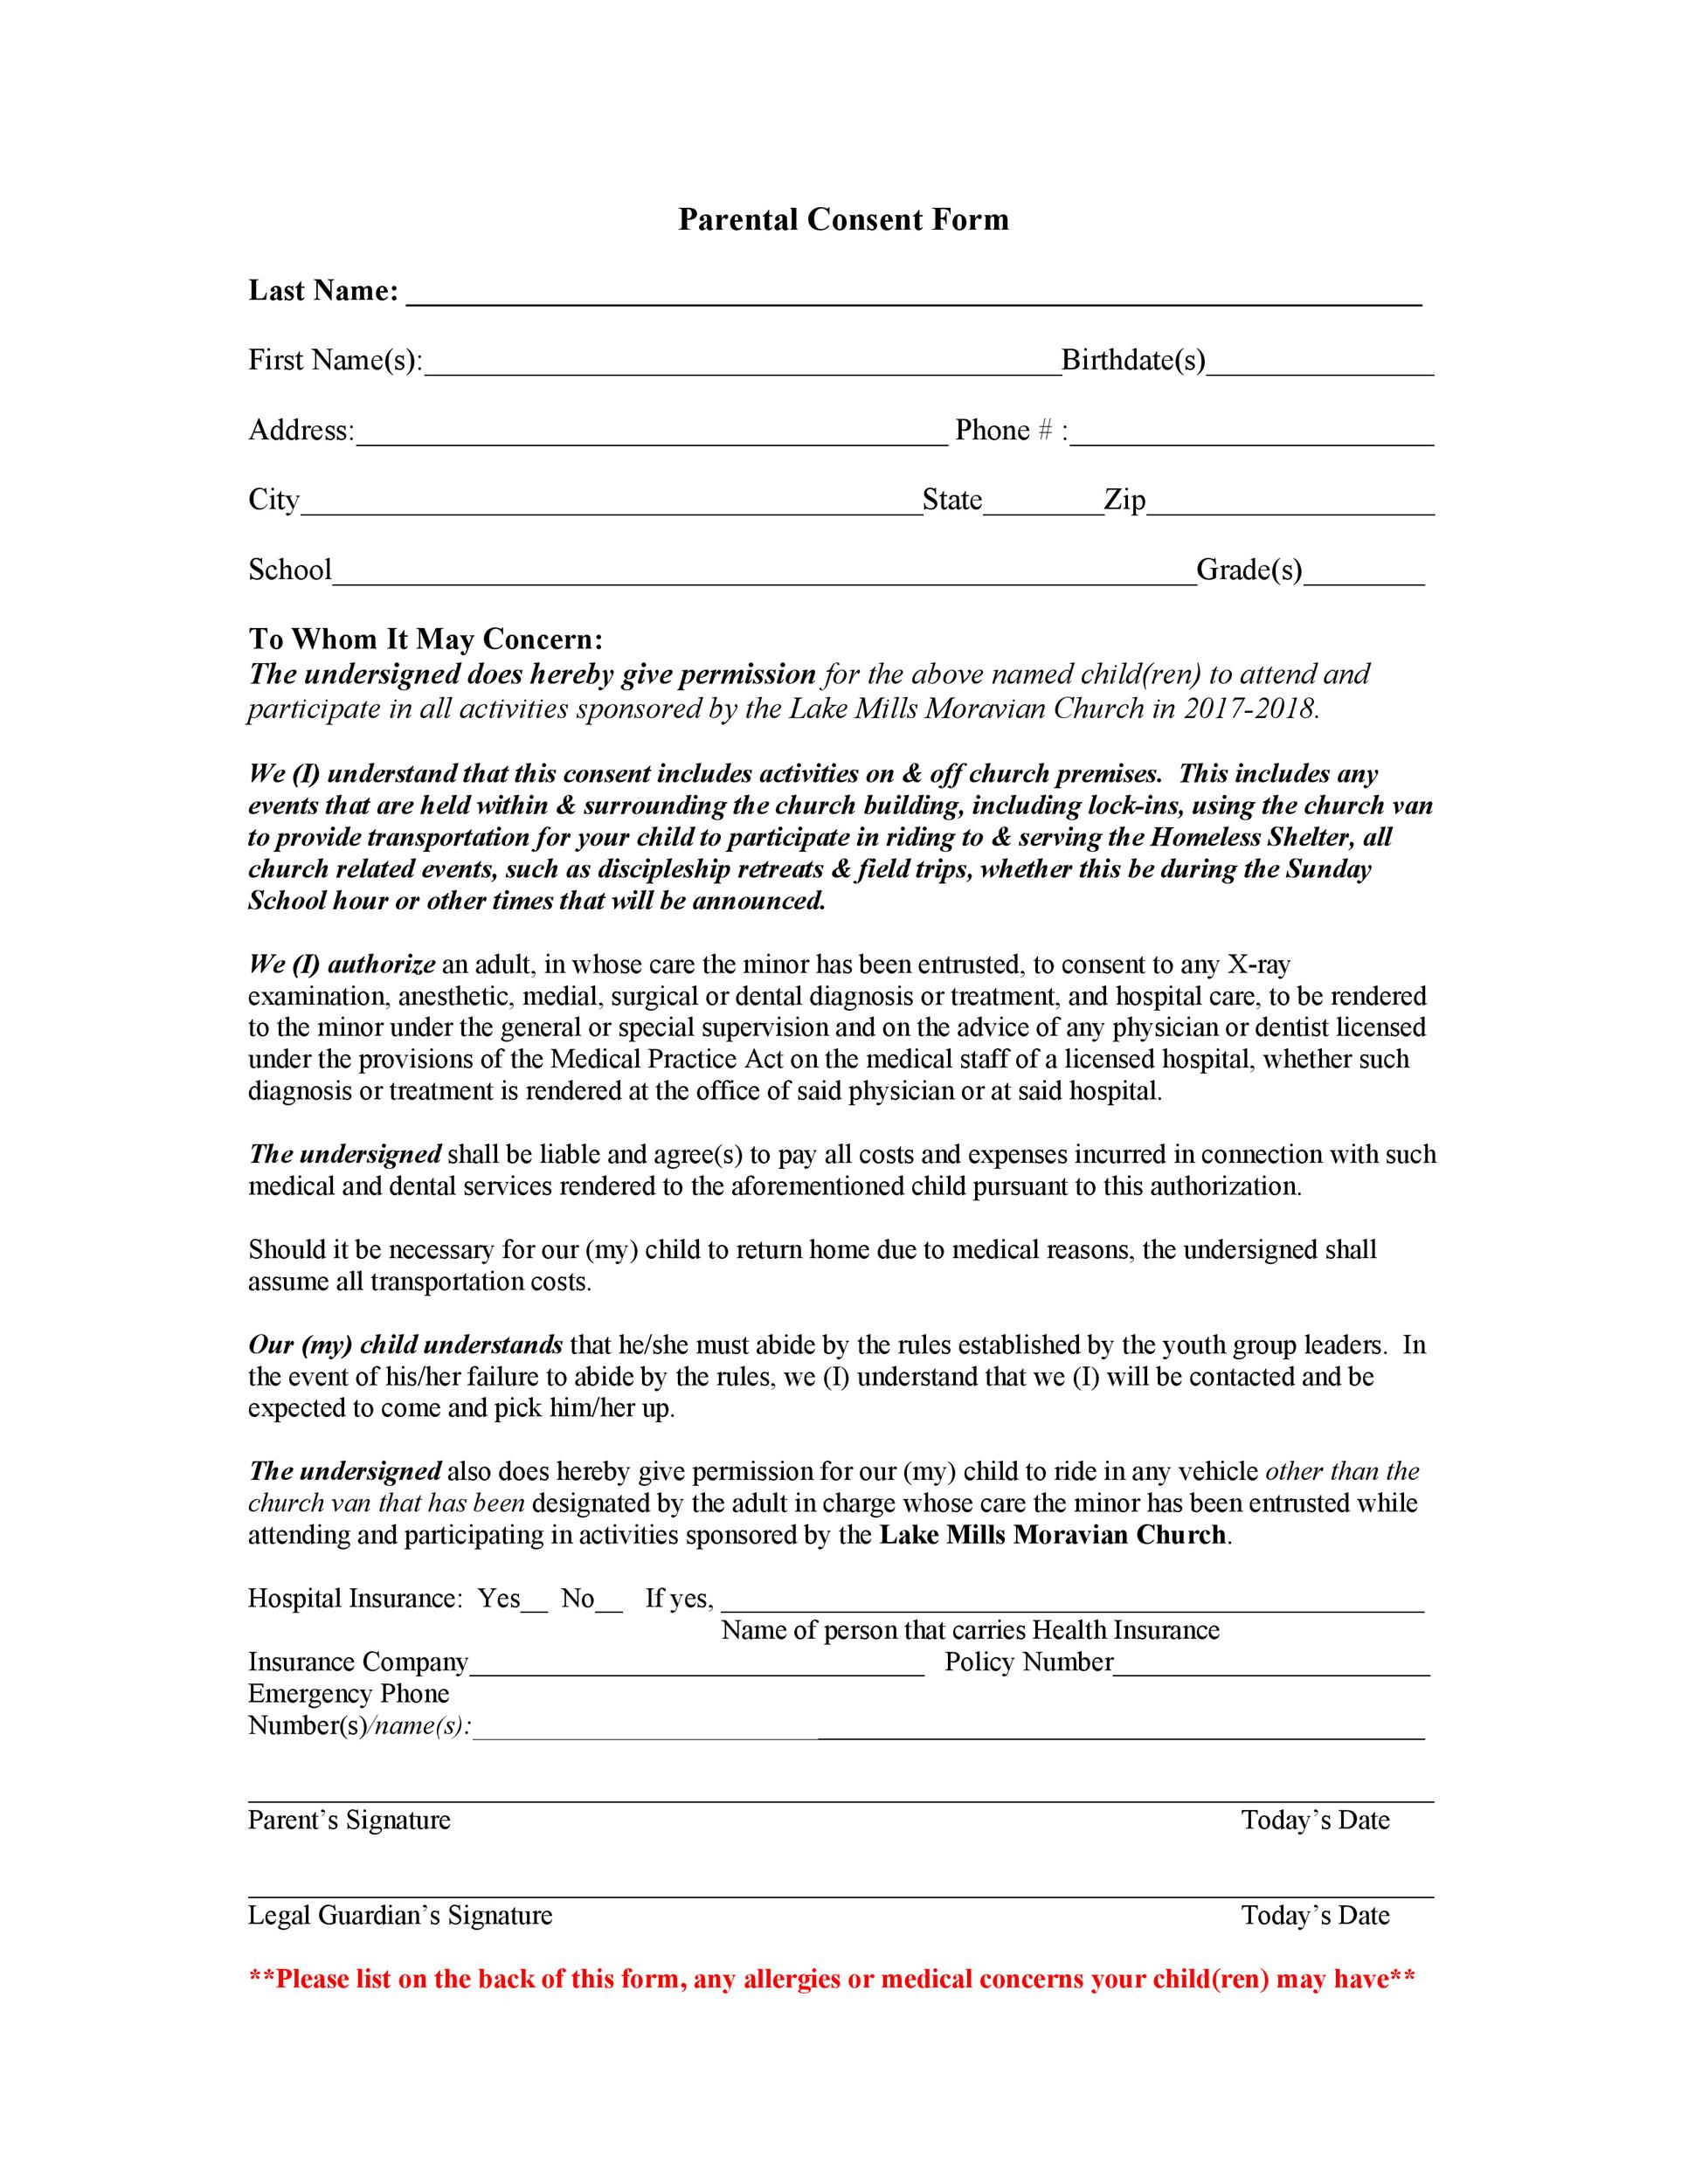 Free parental consent form template 44